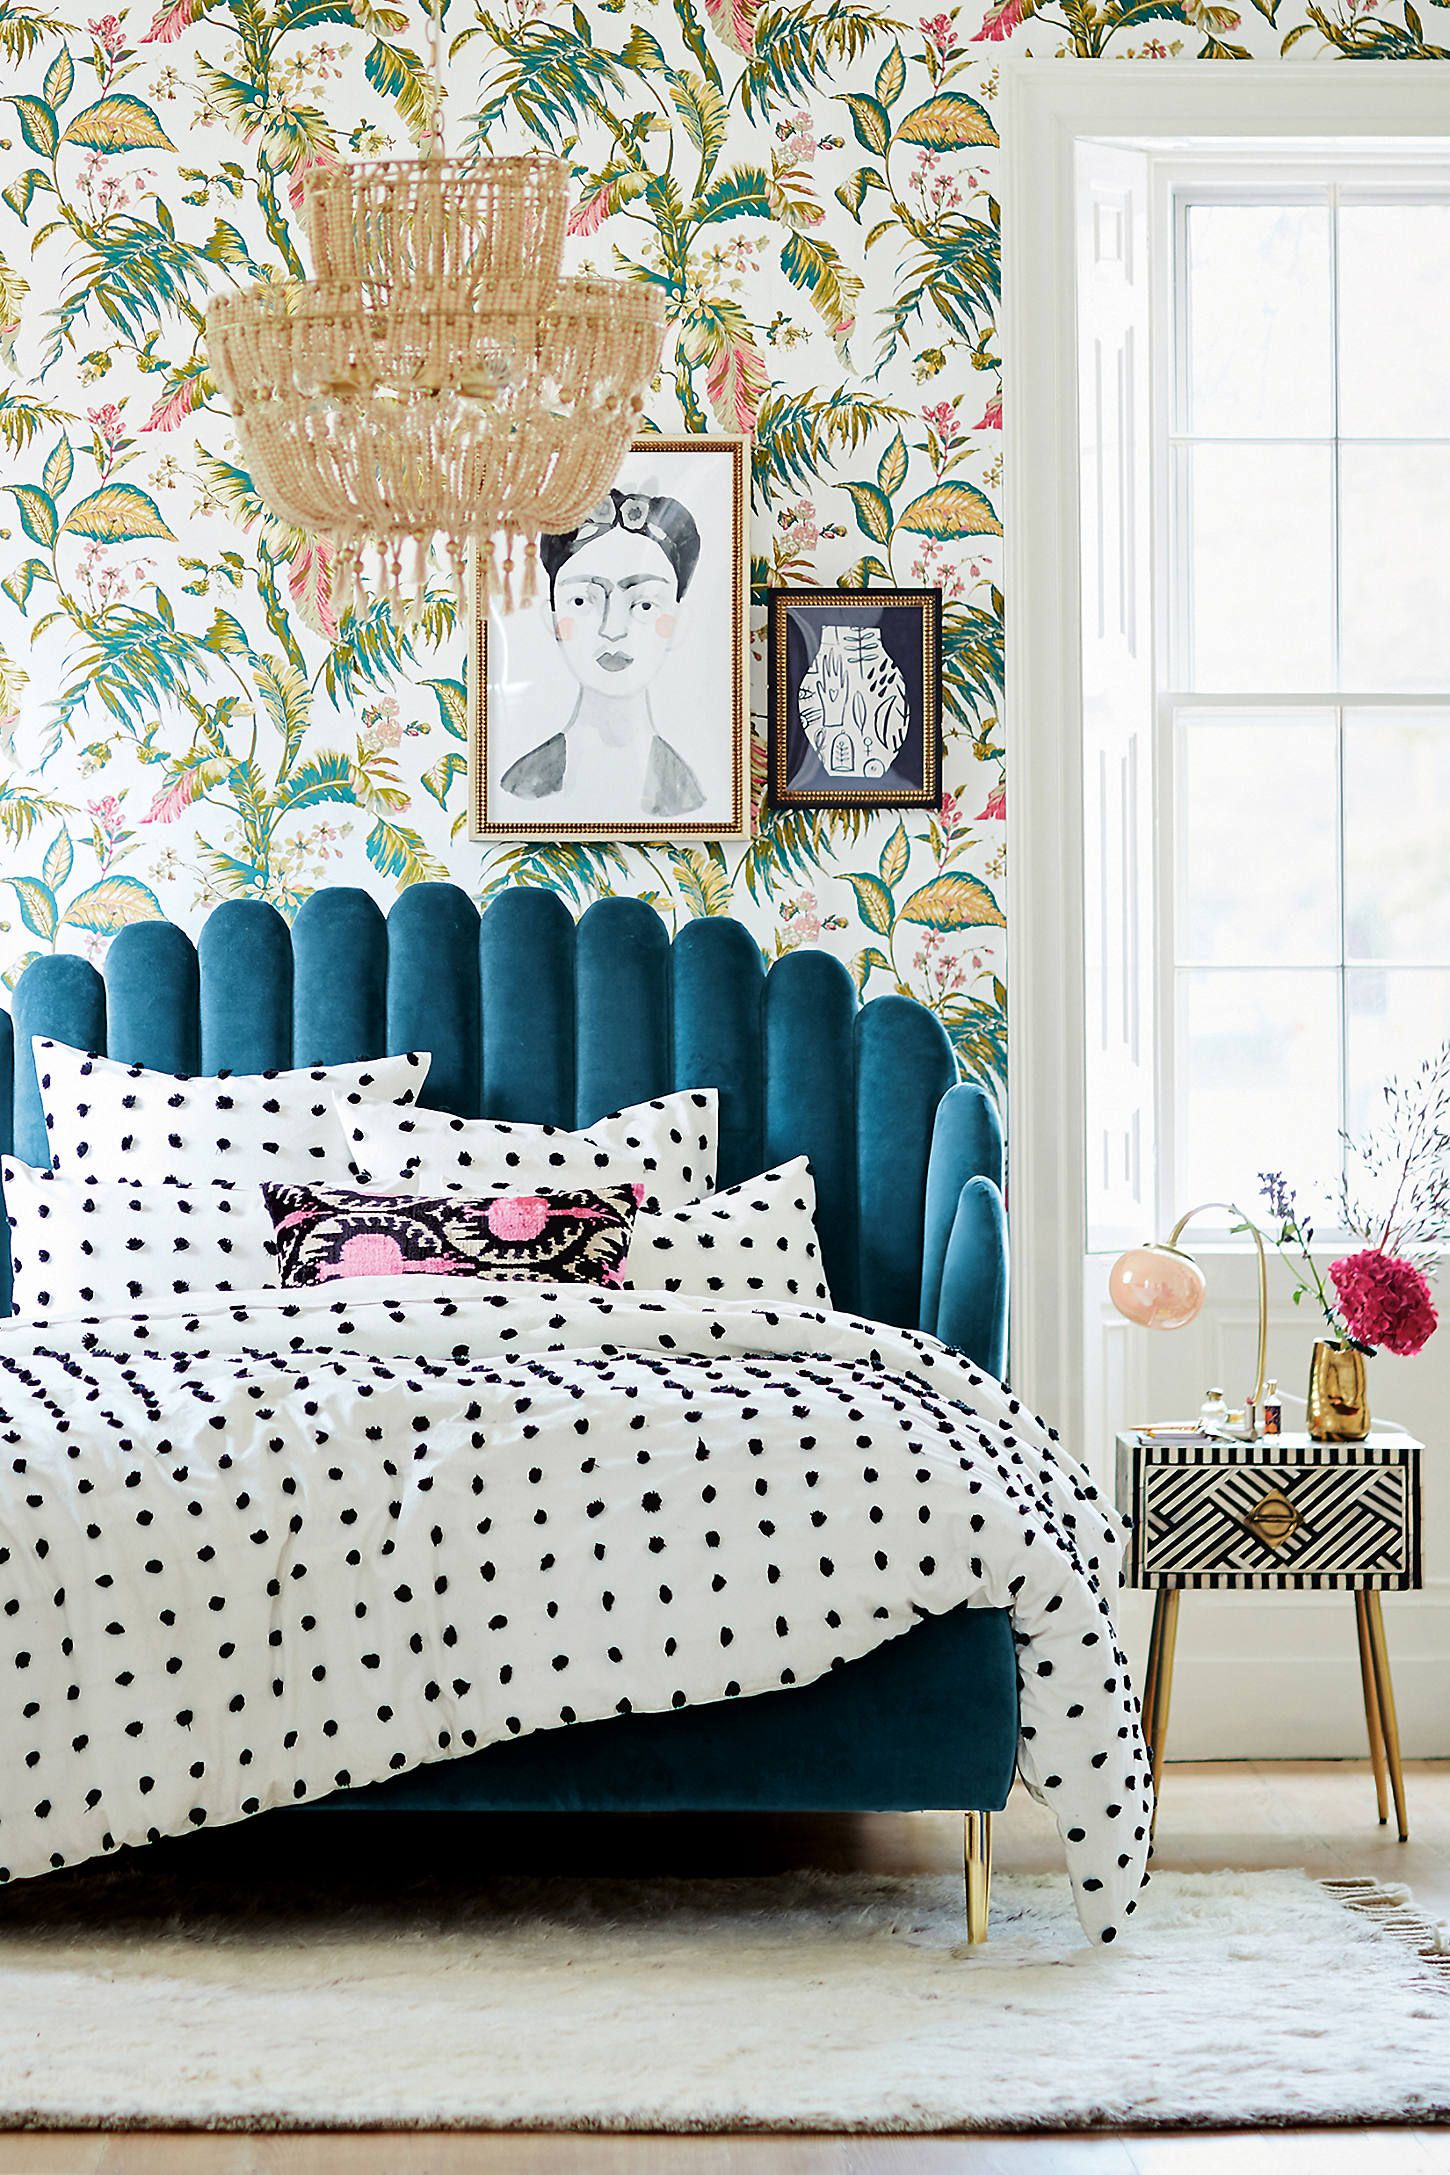 Tufted Makers Quilt by Anthropologie in White, Bedding in